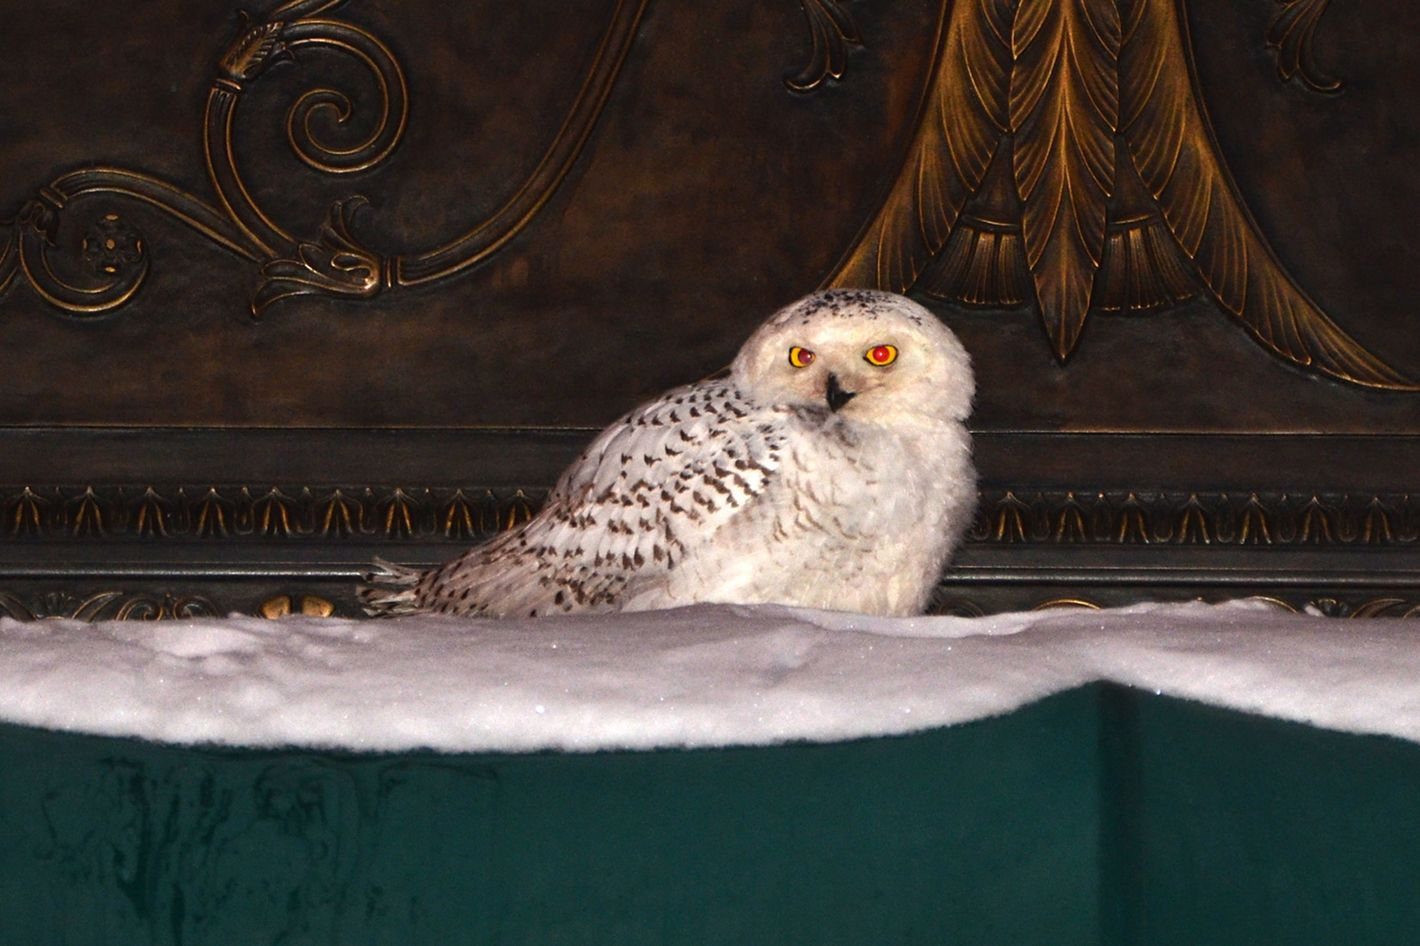 A snowy owl sits on the awning of an office building in downtown Washington, DC January 22, 2014 as the US capital reopened for business on Wednesday amid below average temperatures. Snowy Owls, reportedly found in the northern circumpolar region, are a rare sighting in the metro area.